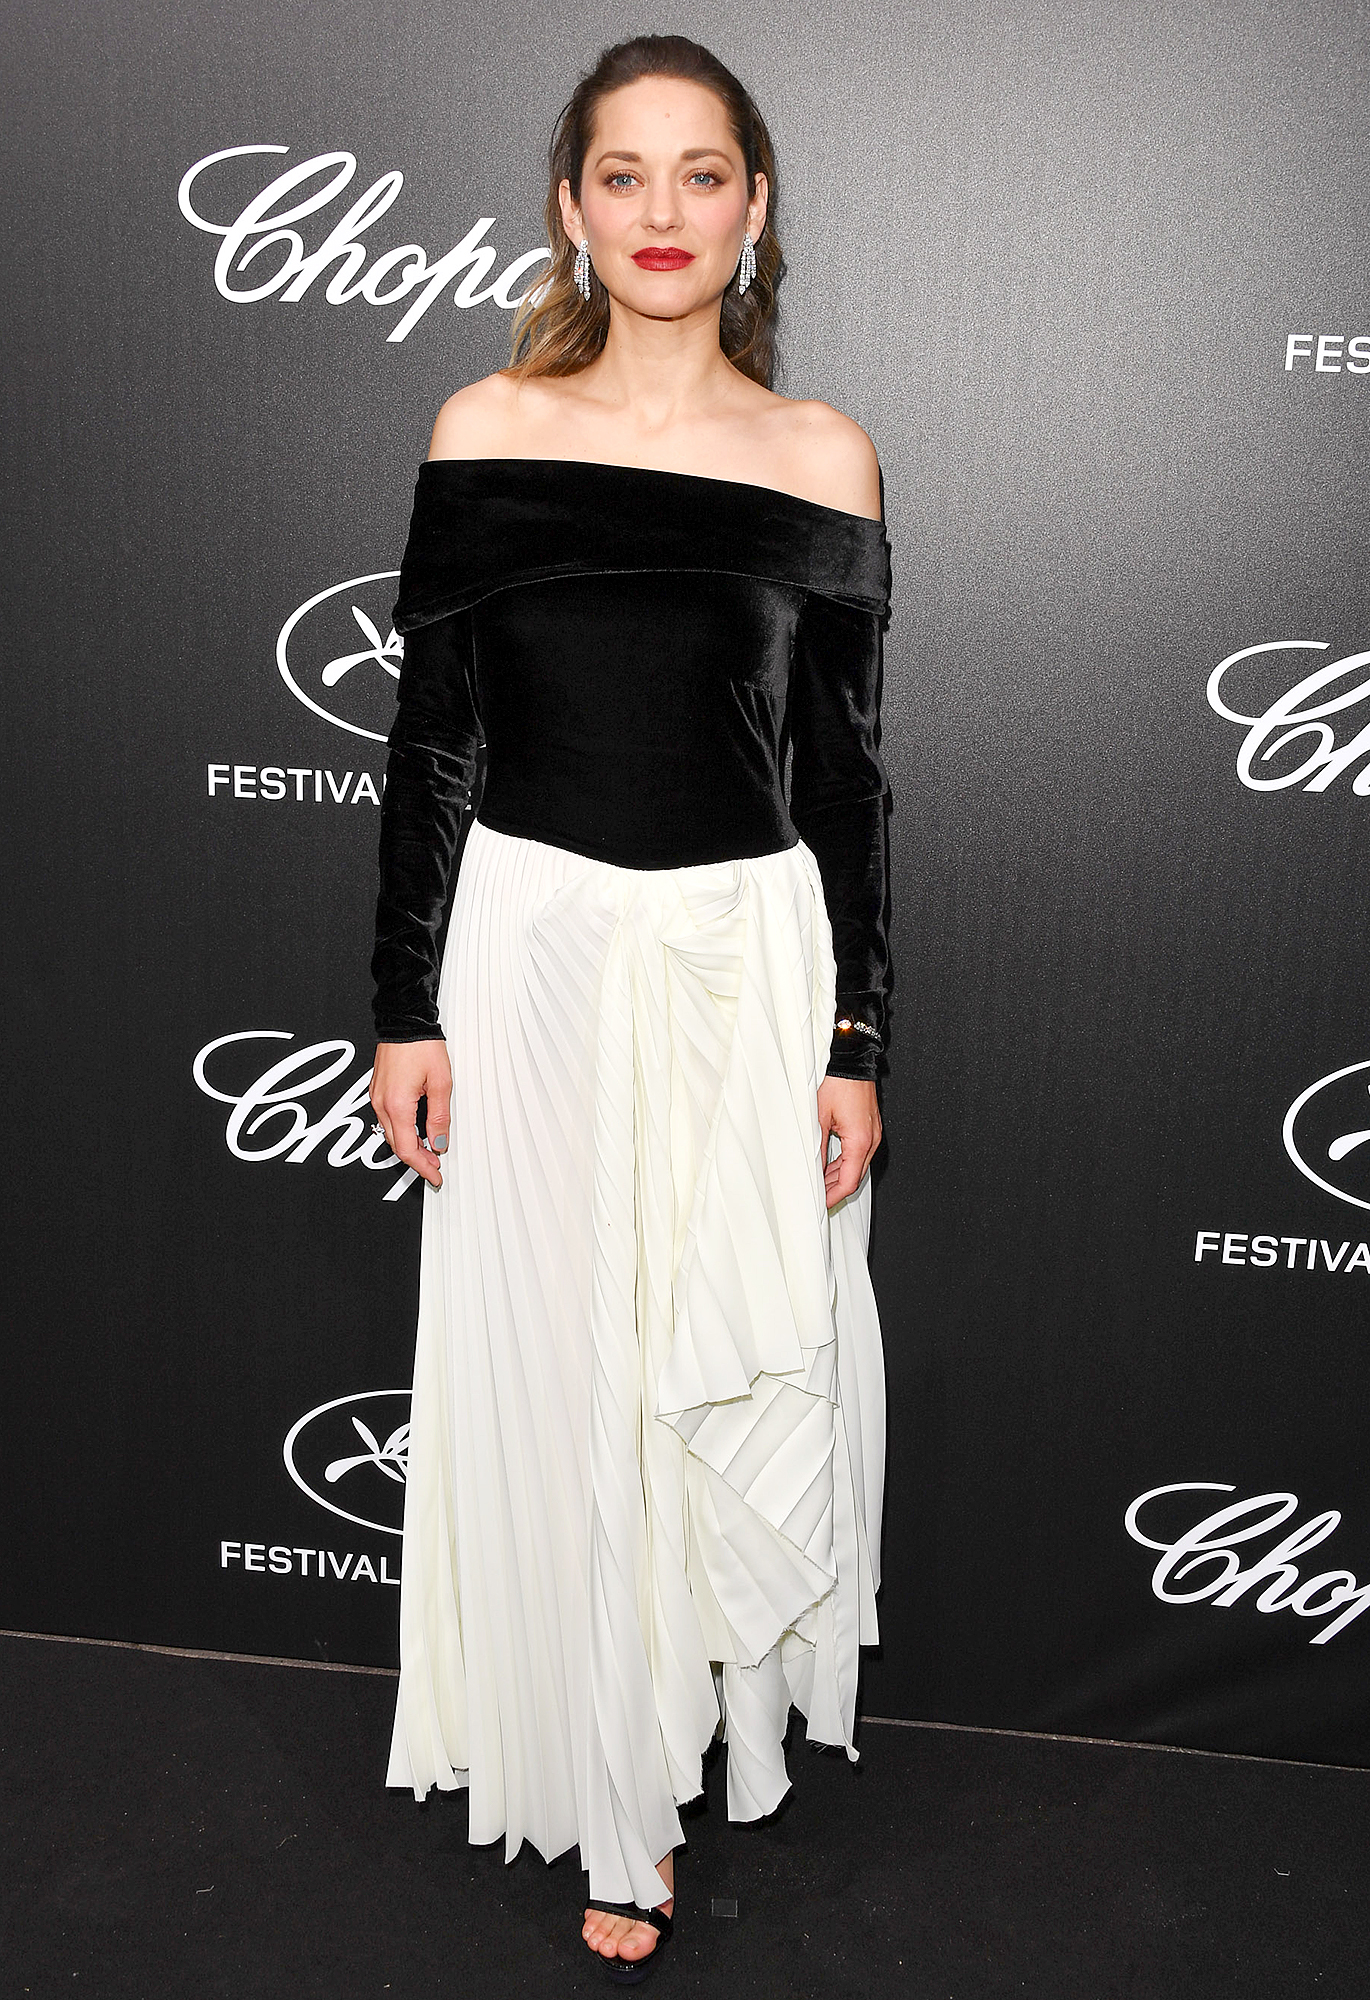 Marion-Cotillard - Très chic is about the only way to describe the French actress' black-and-white number and Chopard jewels at the Chopard Trophy Event on Monday, May 20.